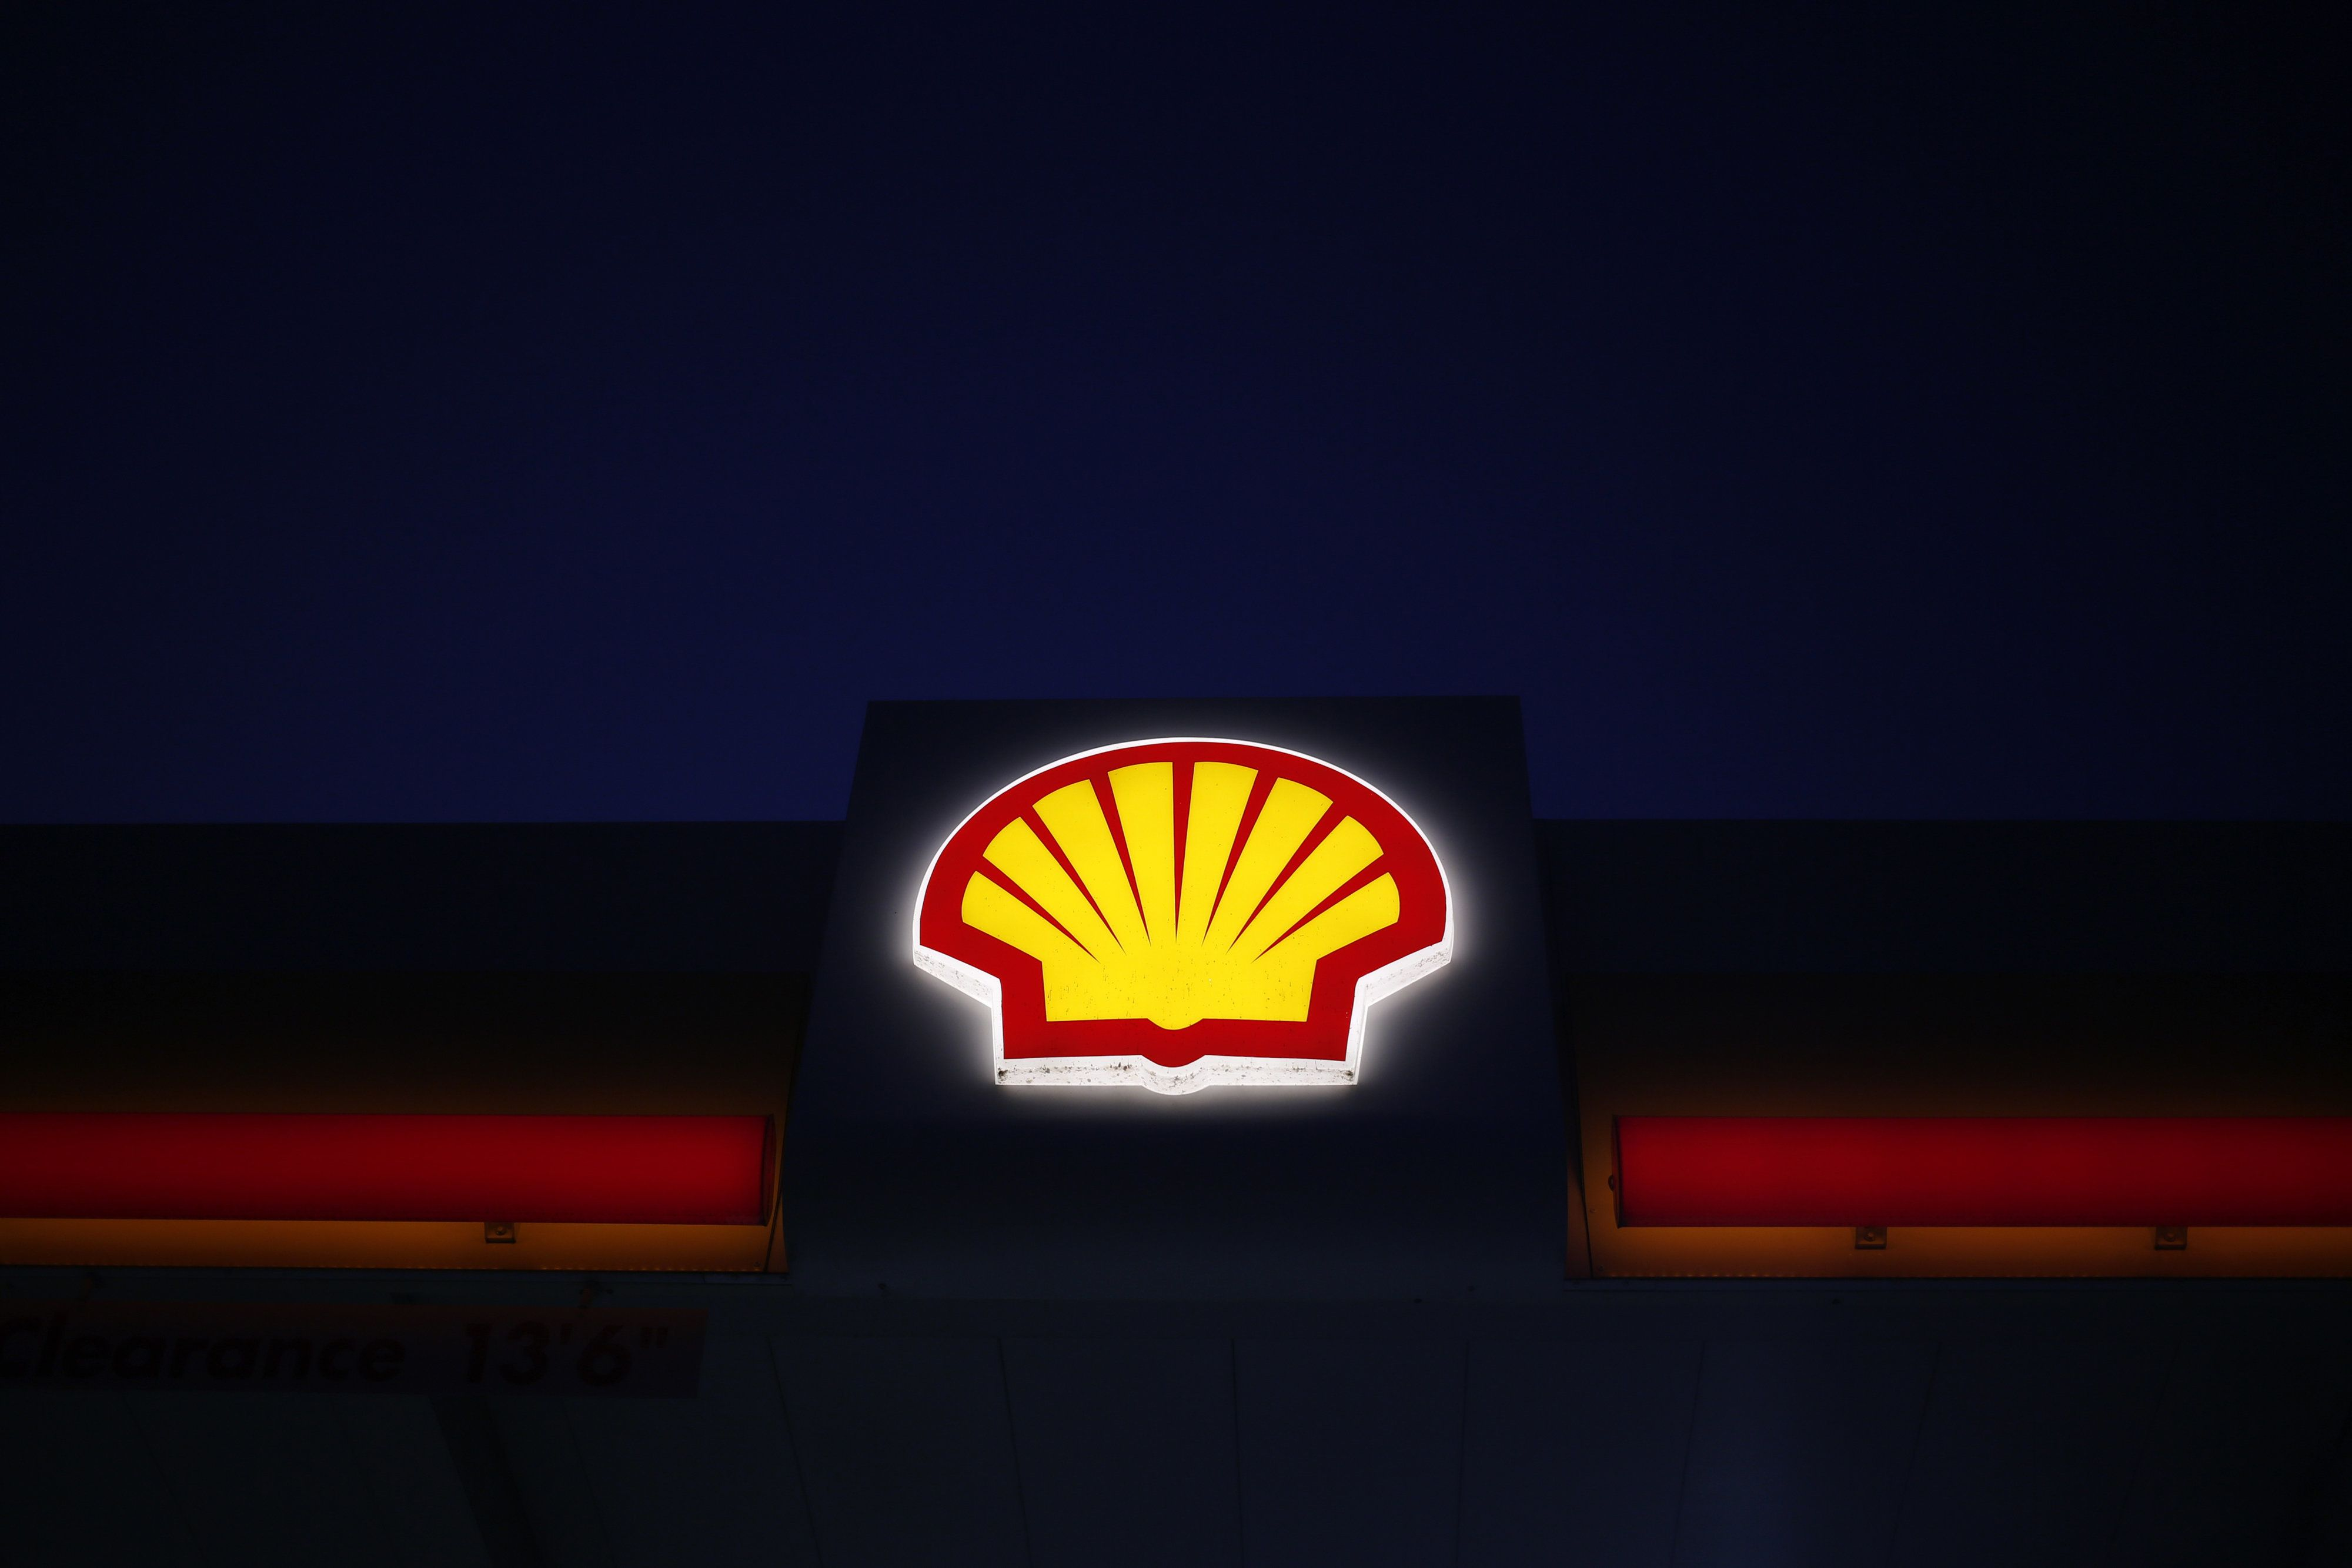 Signage is displayed at a Royal Dutch Shell PLC gasoline station in Louisville, Kentucky, U.S., on Wednesday, July 20, 2016. Royal Dutch Shell is scheduled to release earnings figures on July 28. Photographer: Luke Sharrett/Bloomberg via Getty Images